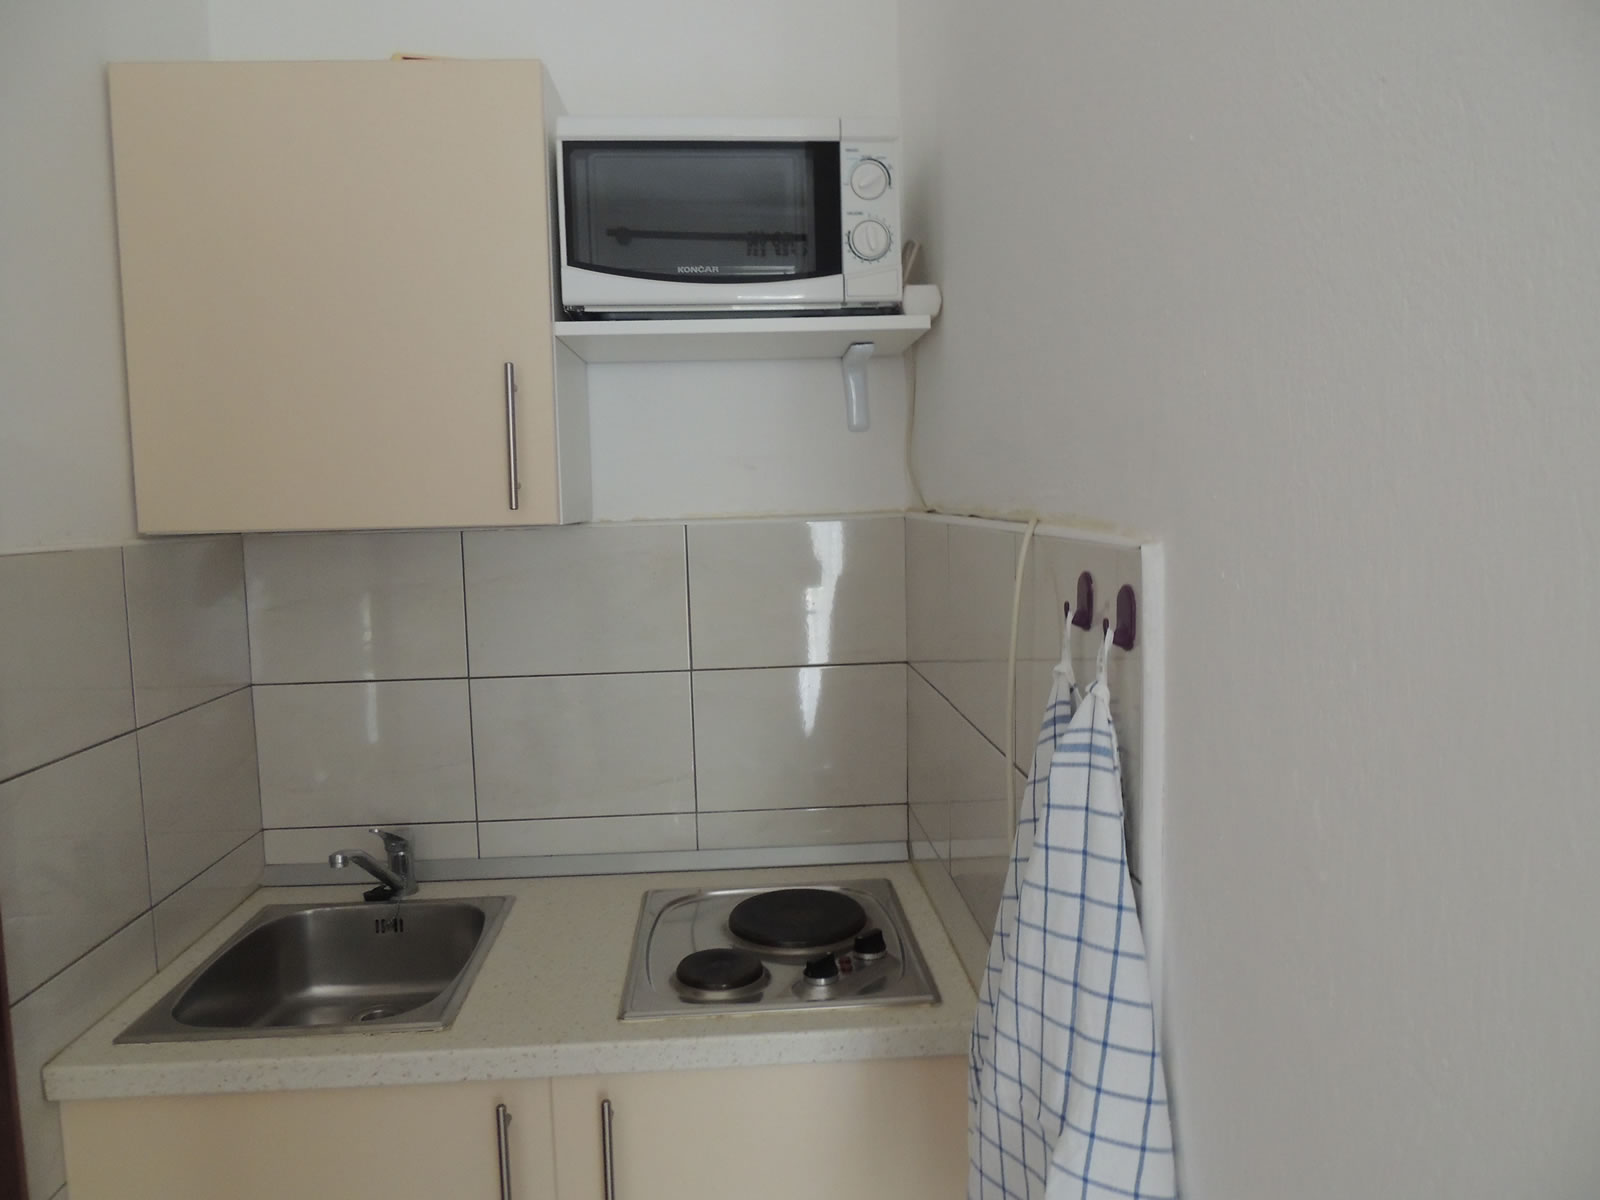 Apartment 2 Kitchenette